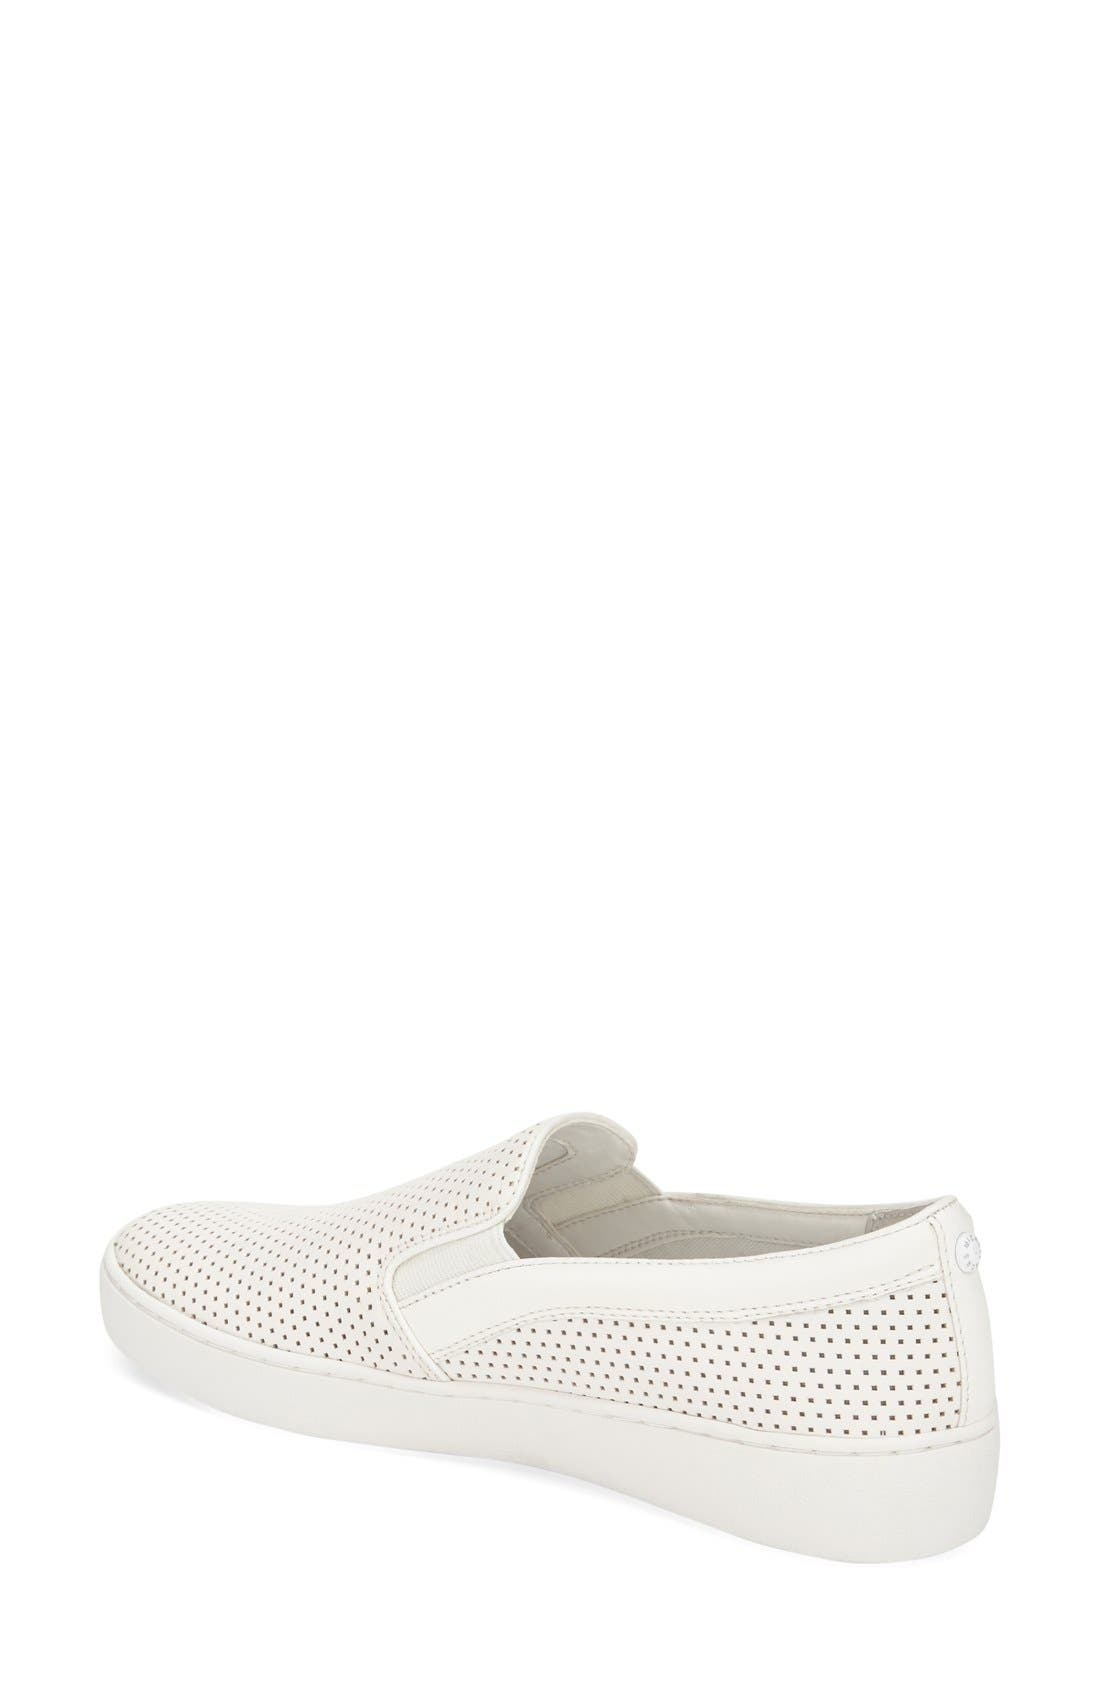 Keaton Slip-On Sneaker,                             Alternate thumbnail 74, color,